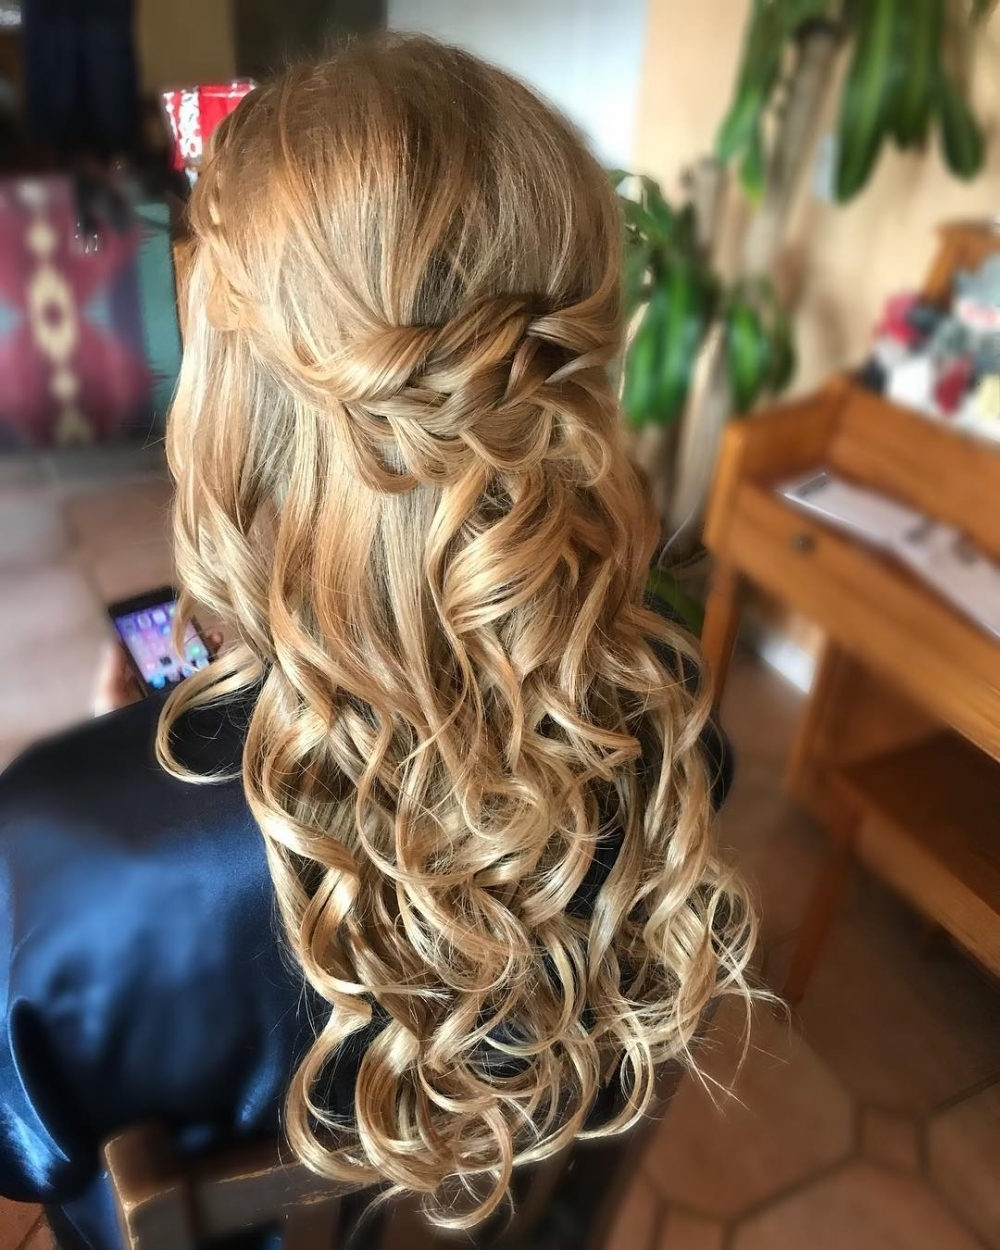 Well Known Wedding Hairstyles For Long Brown Hair Regarding Wedding Hairstyles For Long Hair: 24 Creative & Unique Wedding Styles (View 15 of 15)